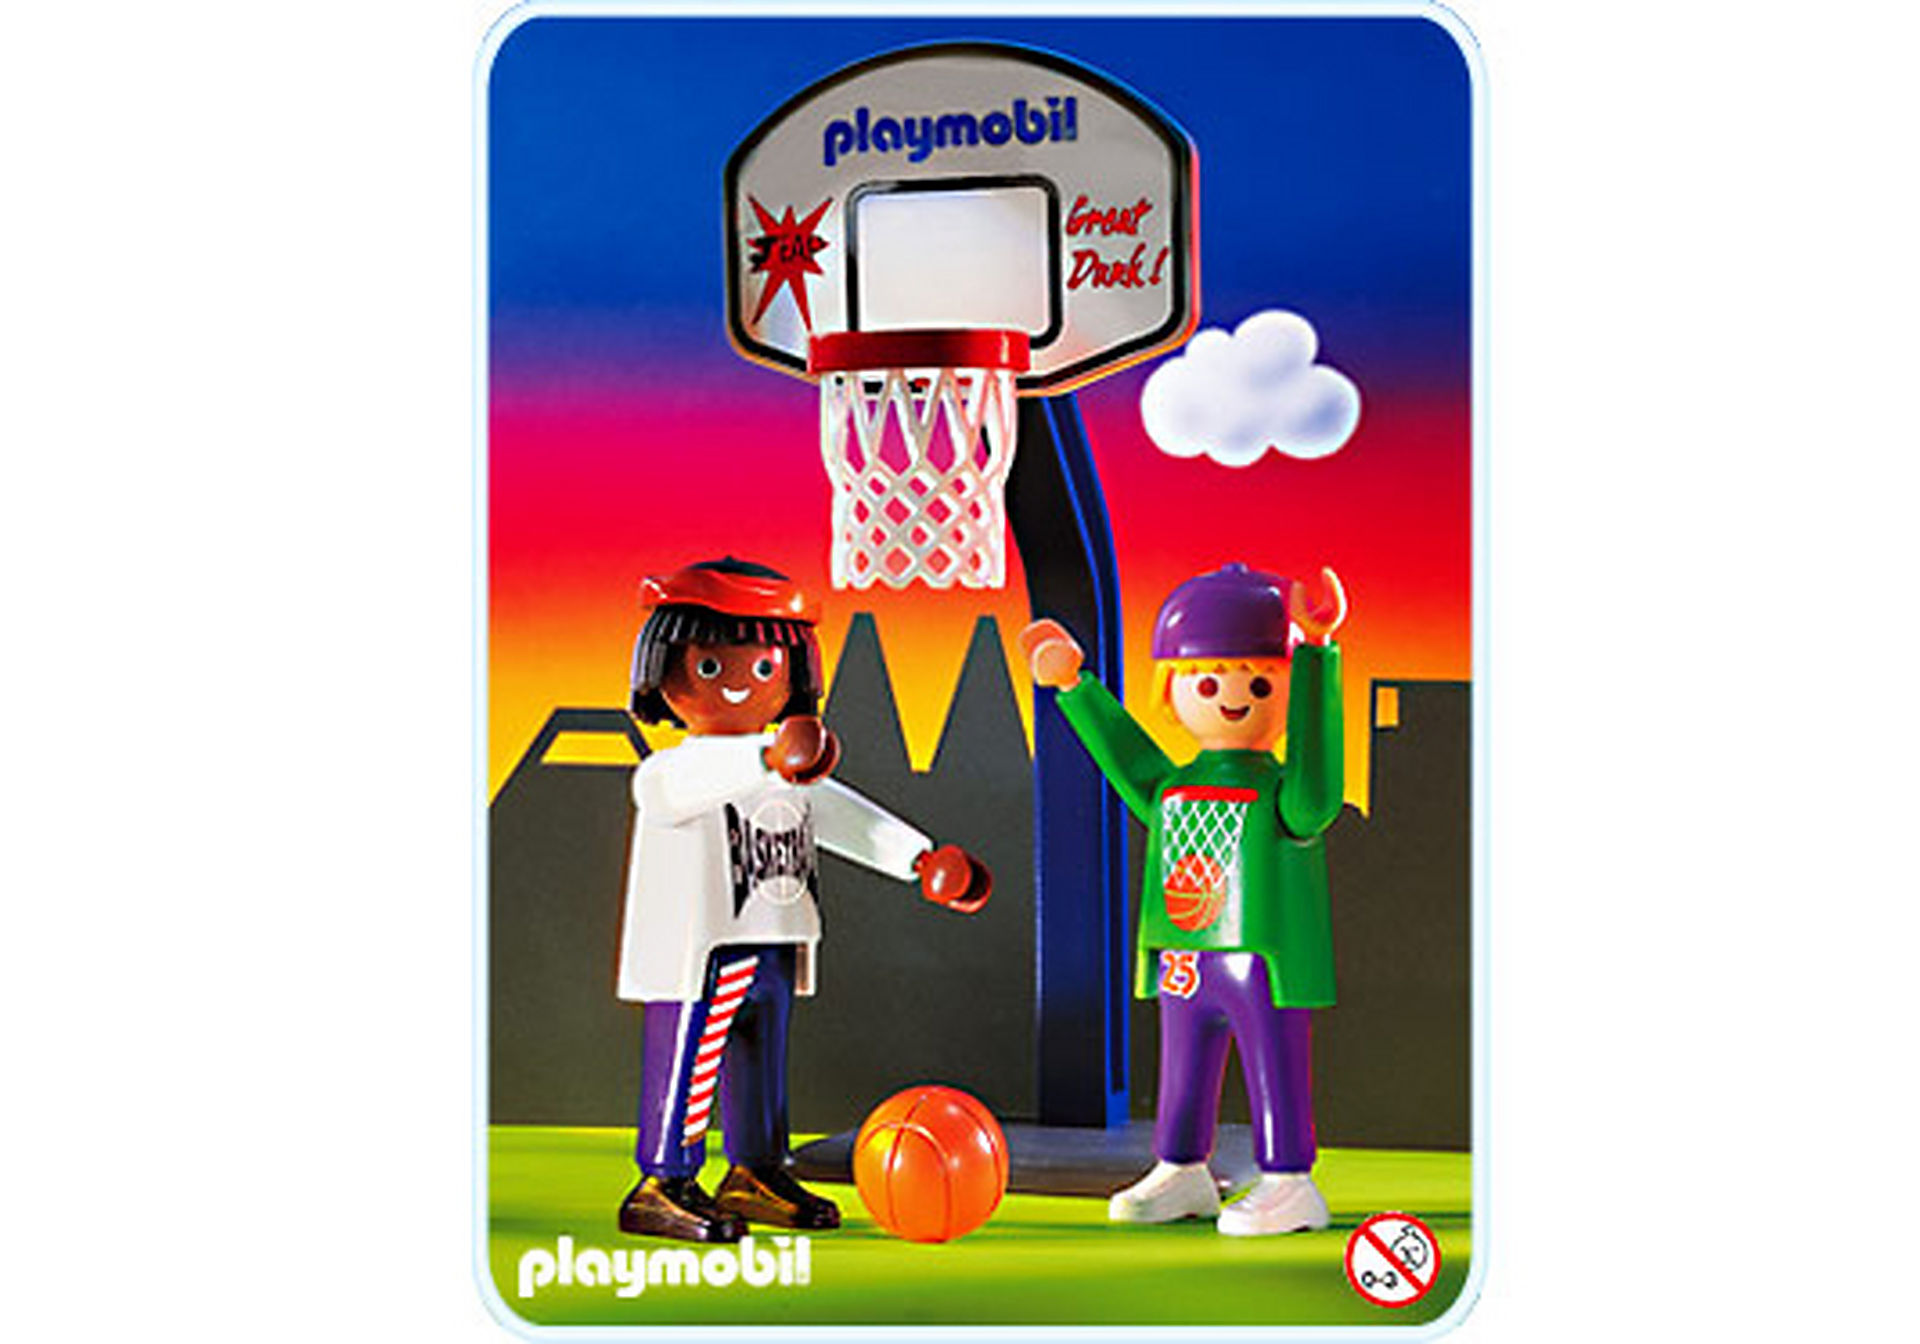 http://media.playmobil.com/i/playmobil/3867-A_product_detail/Basketteurs / panier